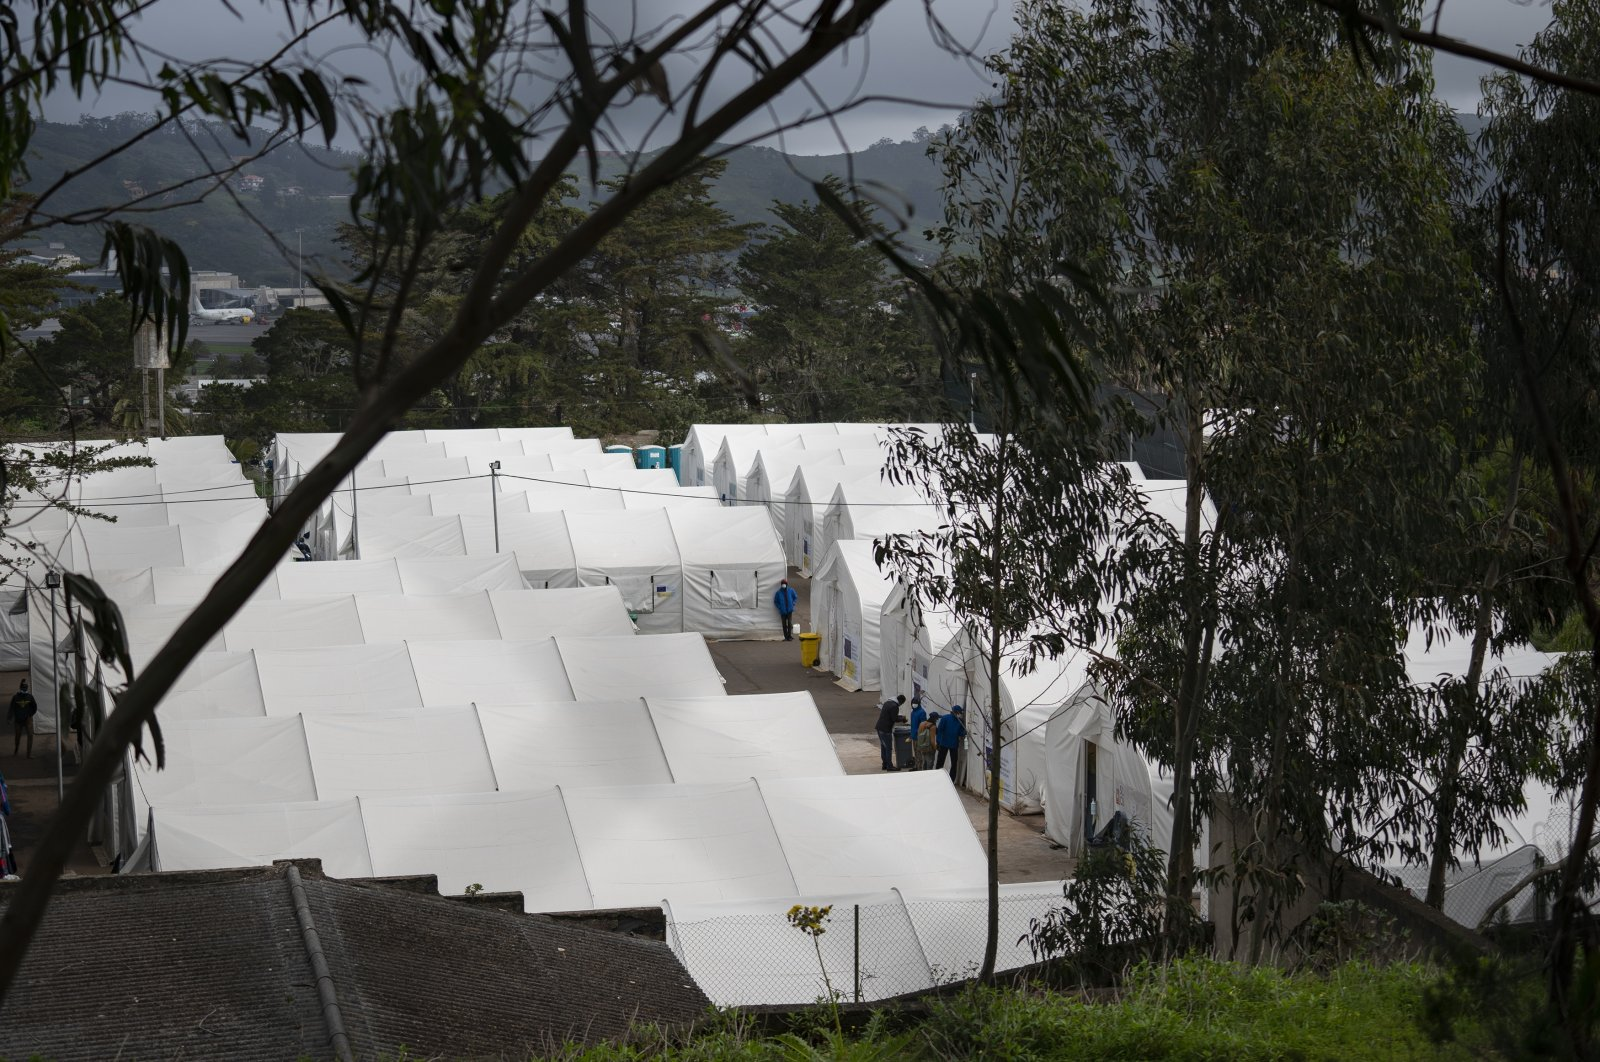 Several tents can be seen in Las Raices camp in San Cristobal de la Laguna, in the Canary Island of Tenerife, Spain, March 18, 2021. (AP Photo)